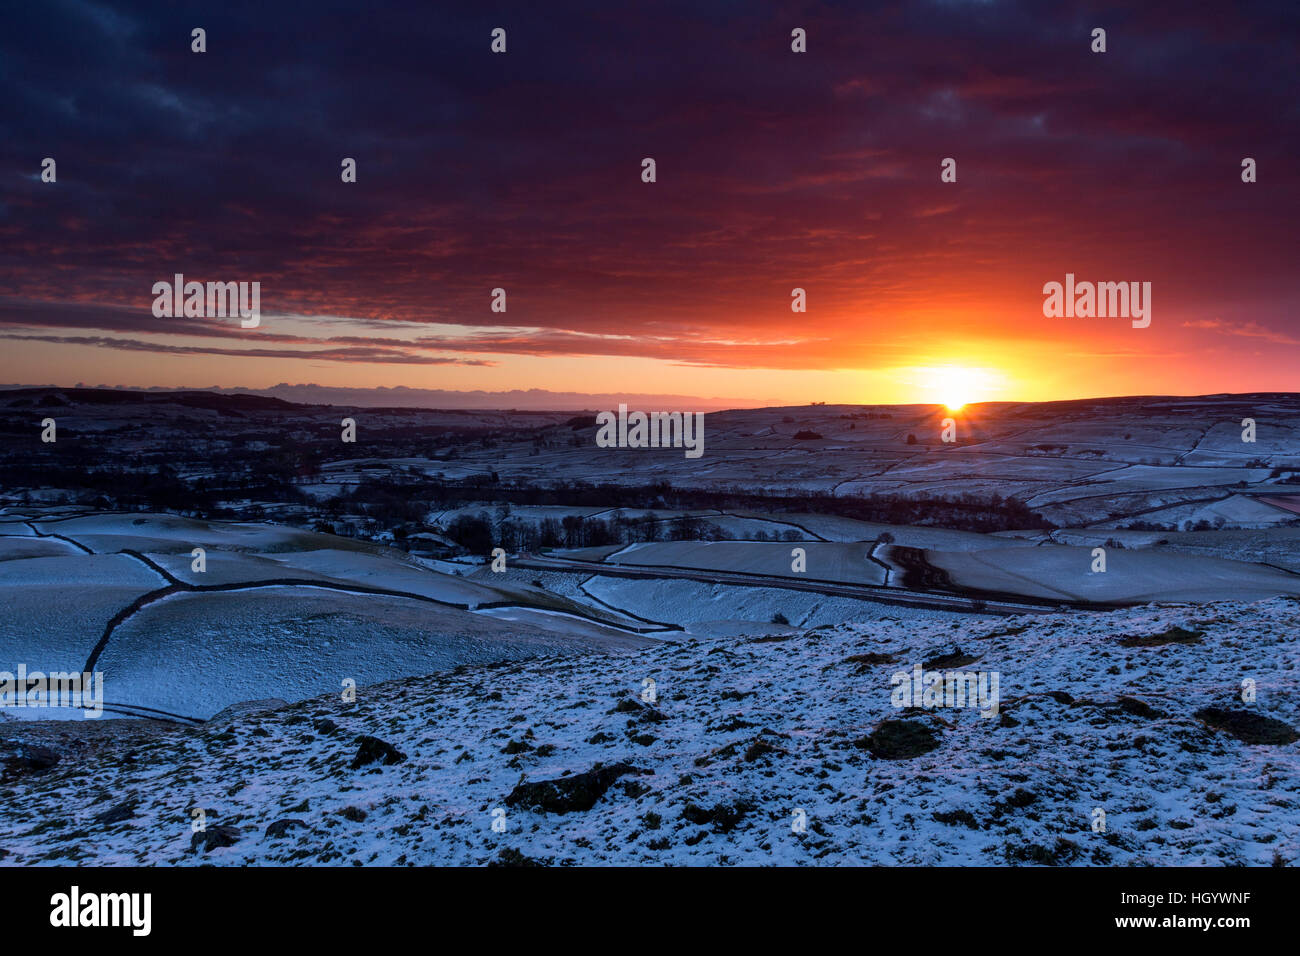 Kirkcarrion, Teesdale, County Durham UK. Saturday 14th January 2017. UK Weather.  It was a frosty and snowy start - Stock Image